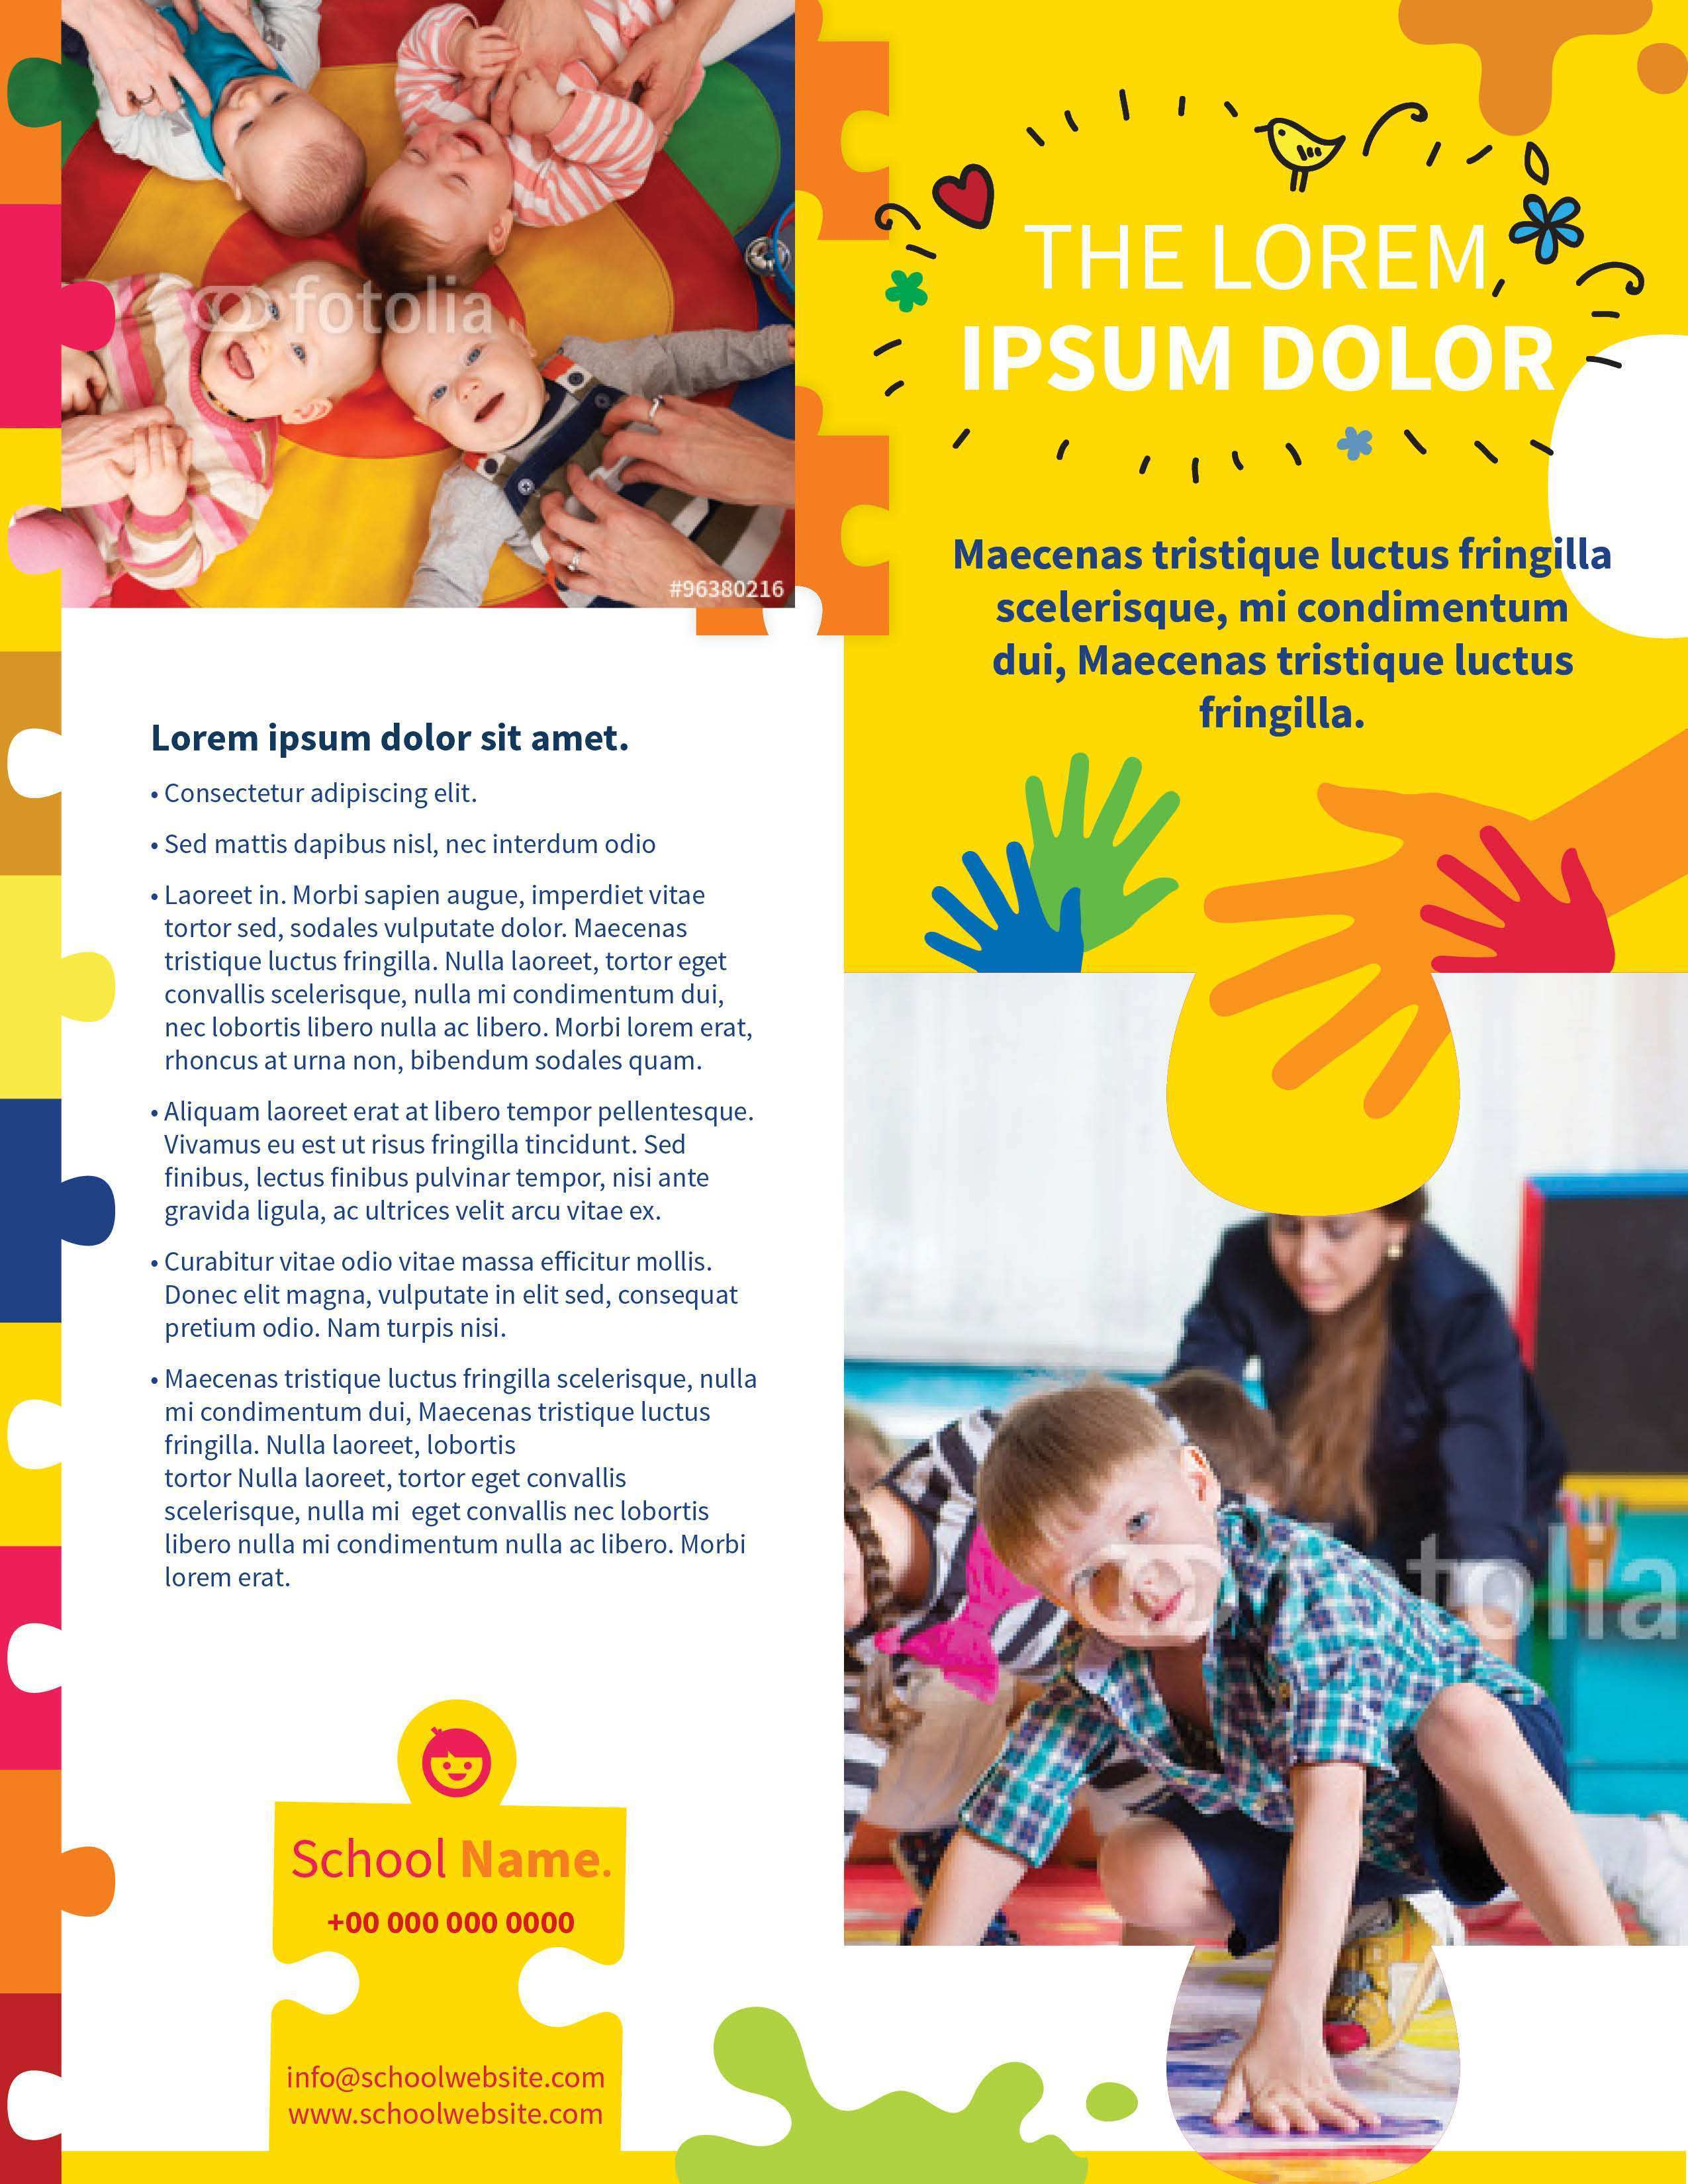 79 Format Daycare Flyer Templates Formating with Daycare Flyer Templates